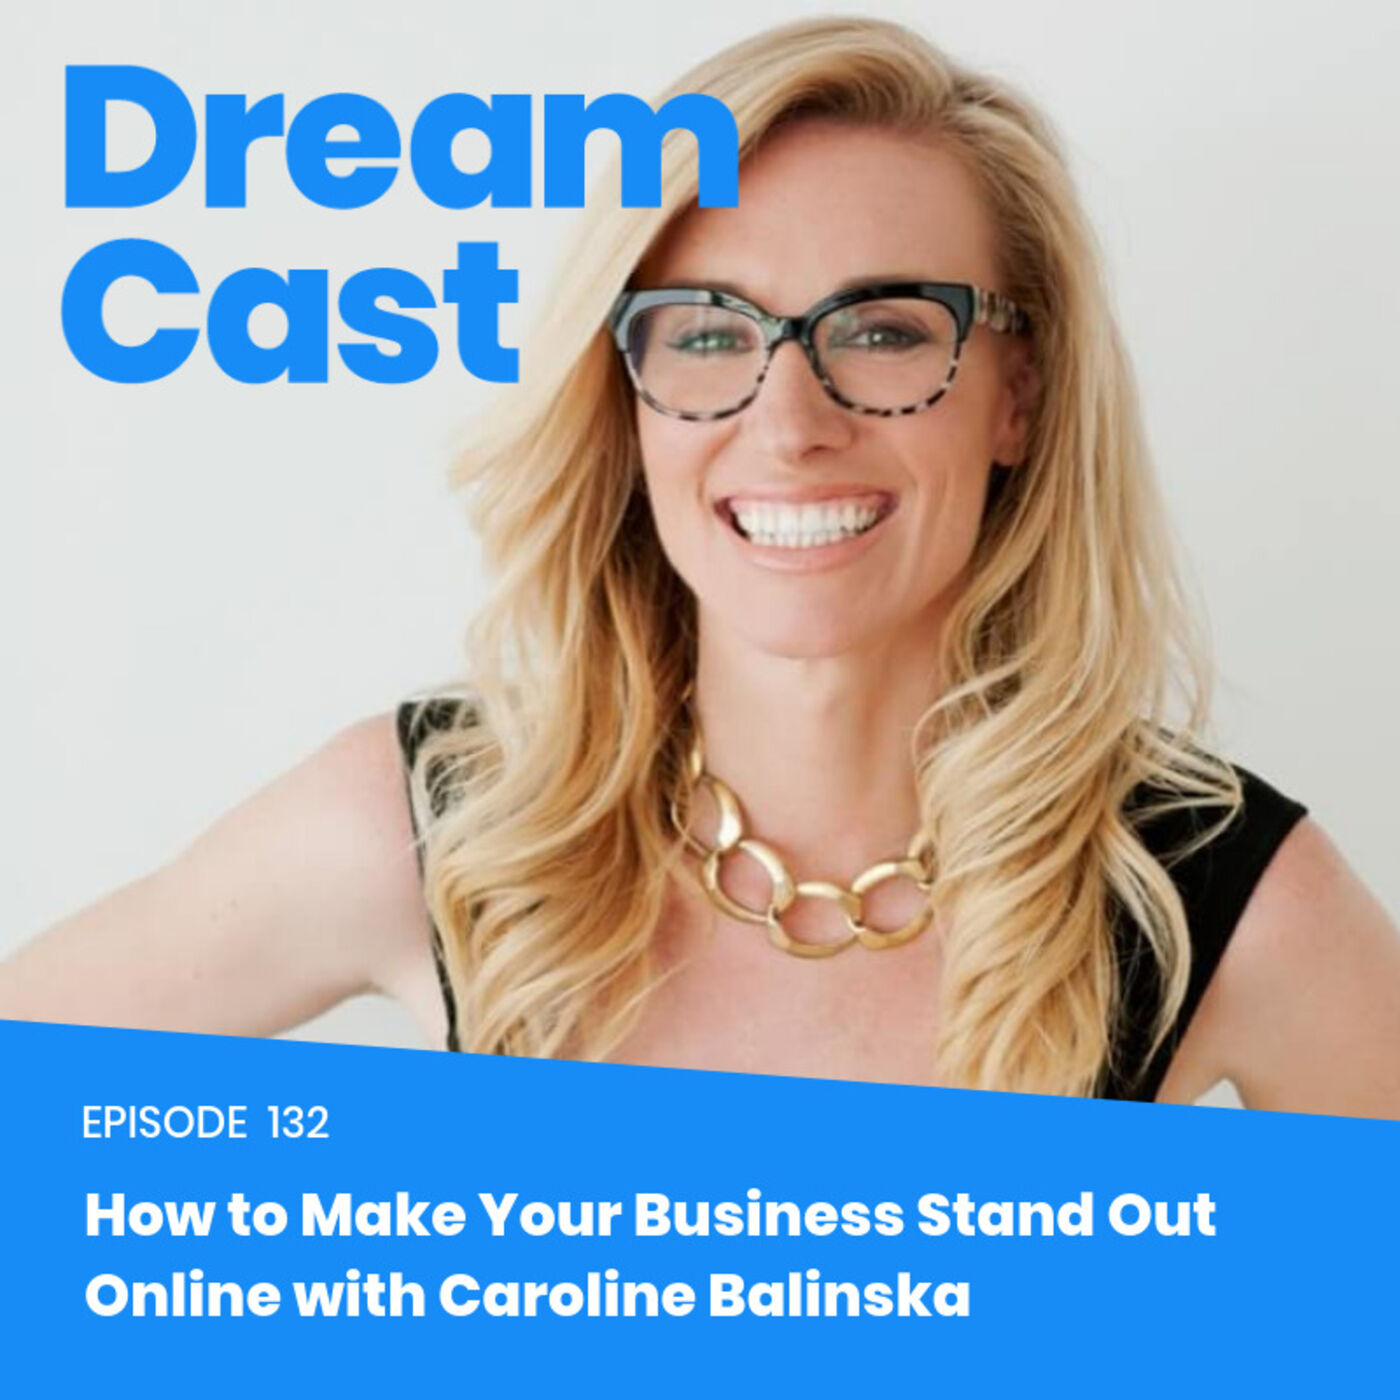 Episode 132 – How to Make Your Business Stand Out Online with Caroline Balinska